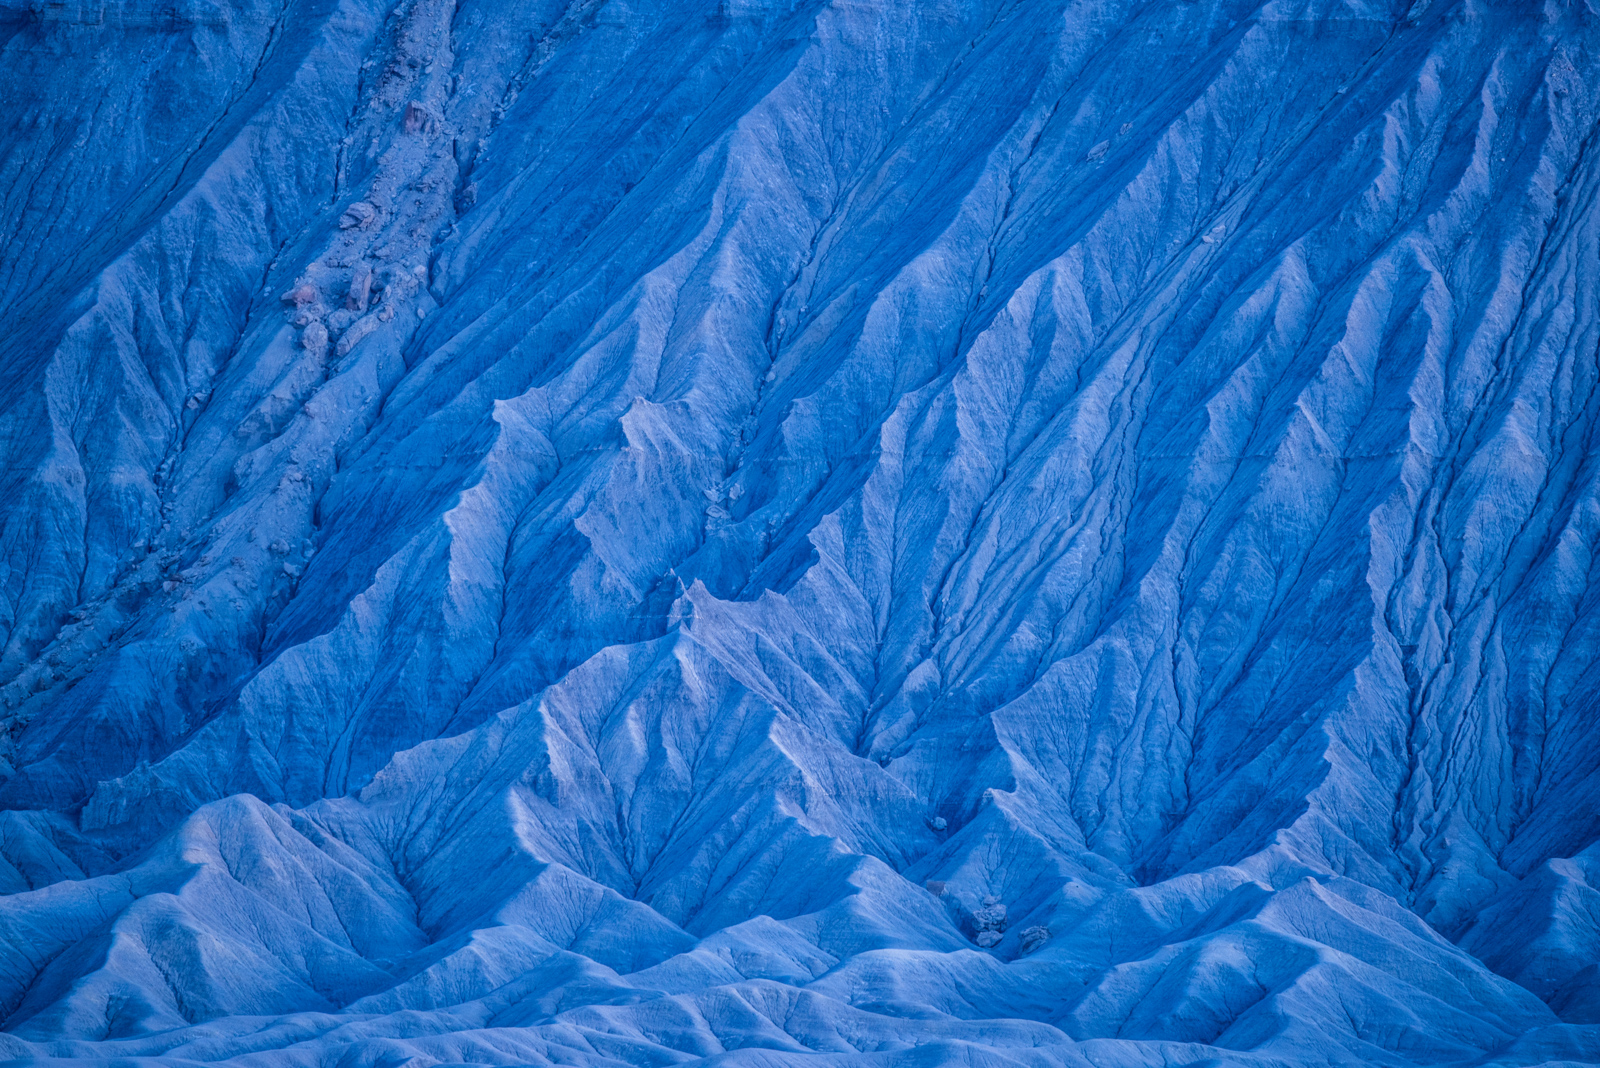 Blue hour on the buttes © Allie Richards